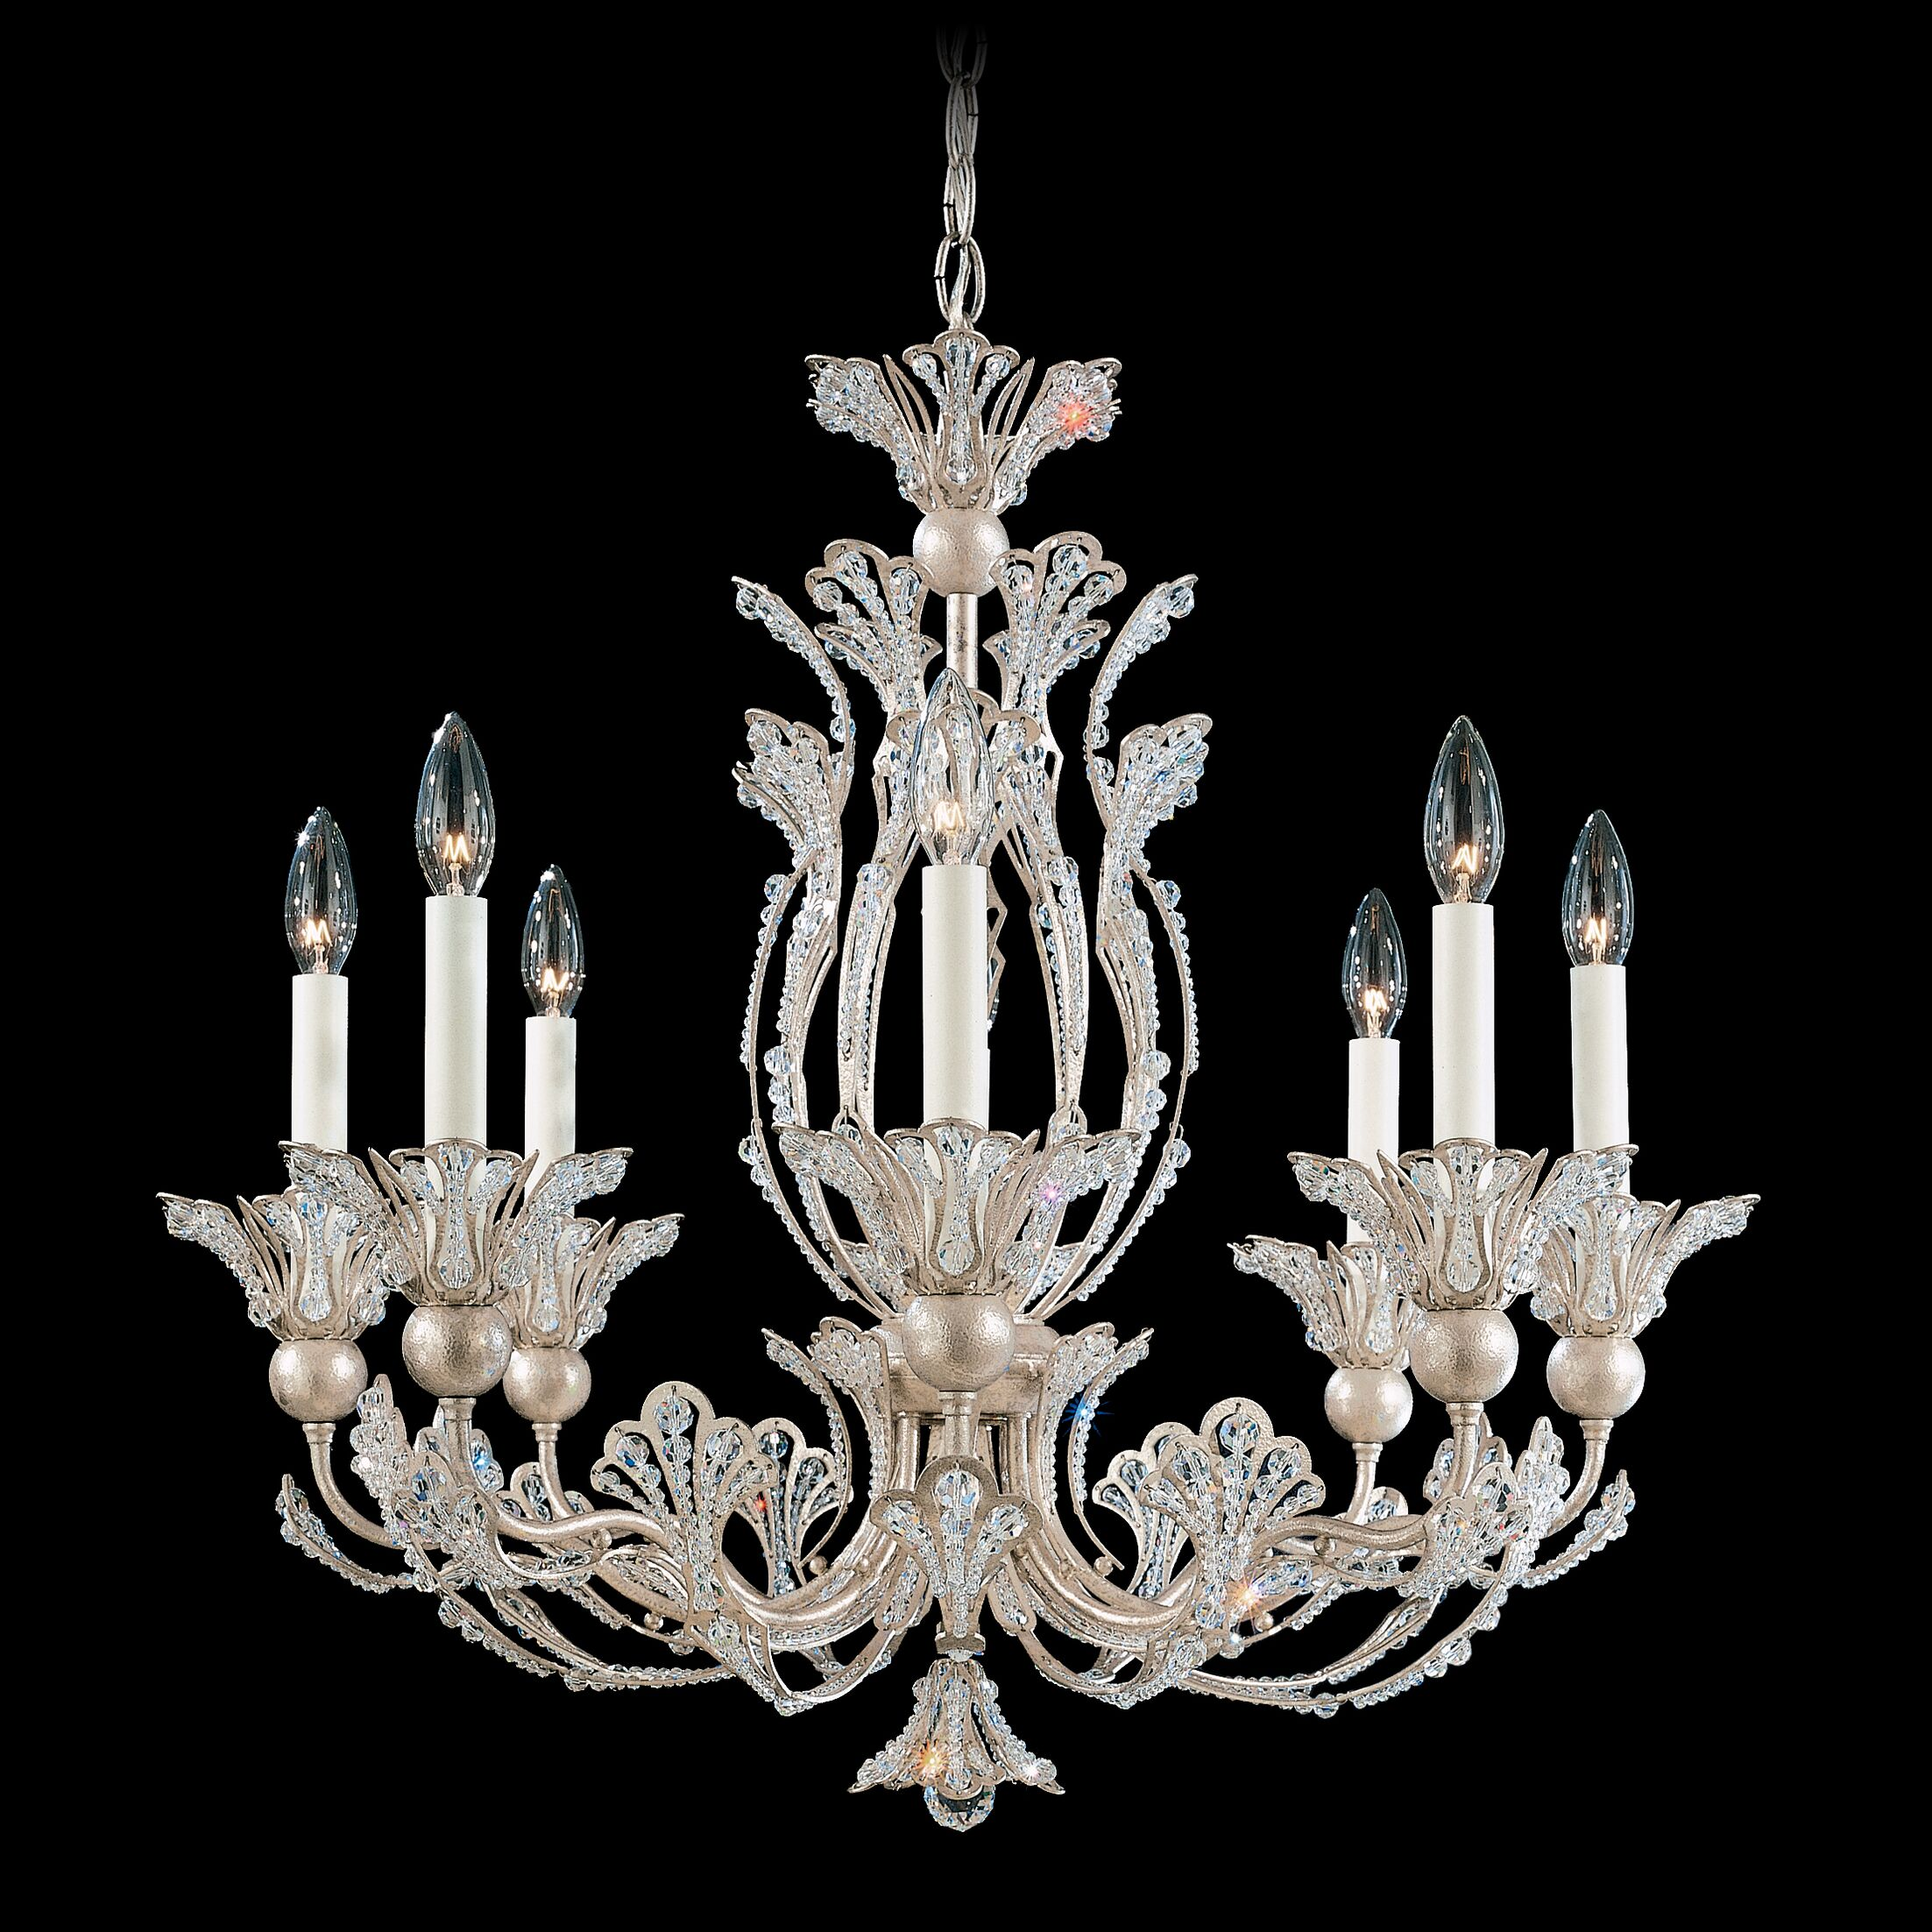 Rivendell 8-Light Chandelier Finish: Antique Silver, Crystal Color: Strass Clear